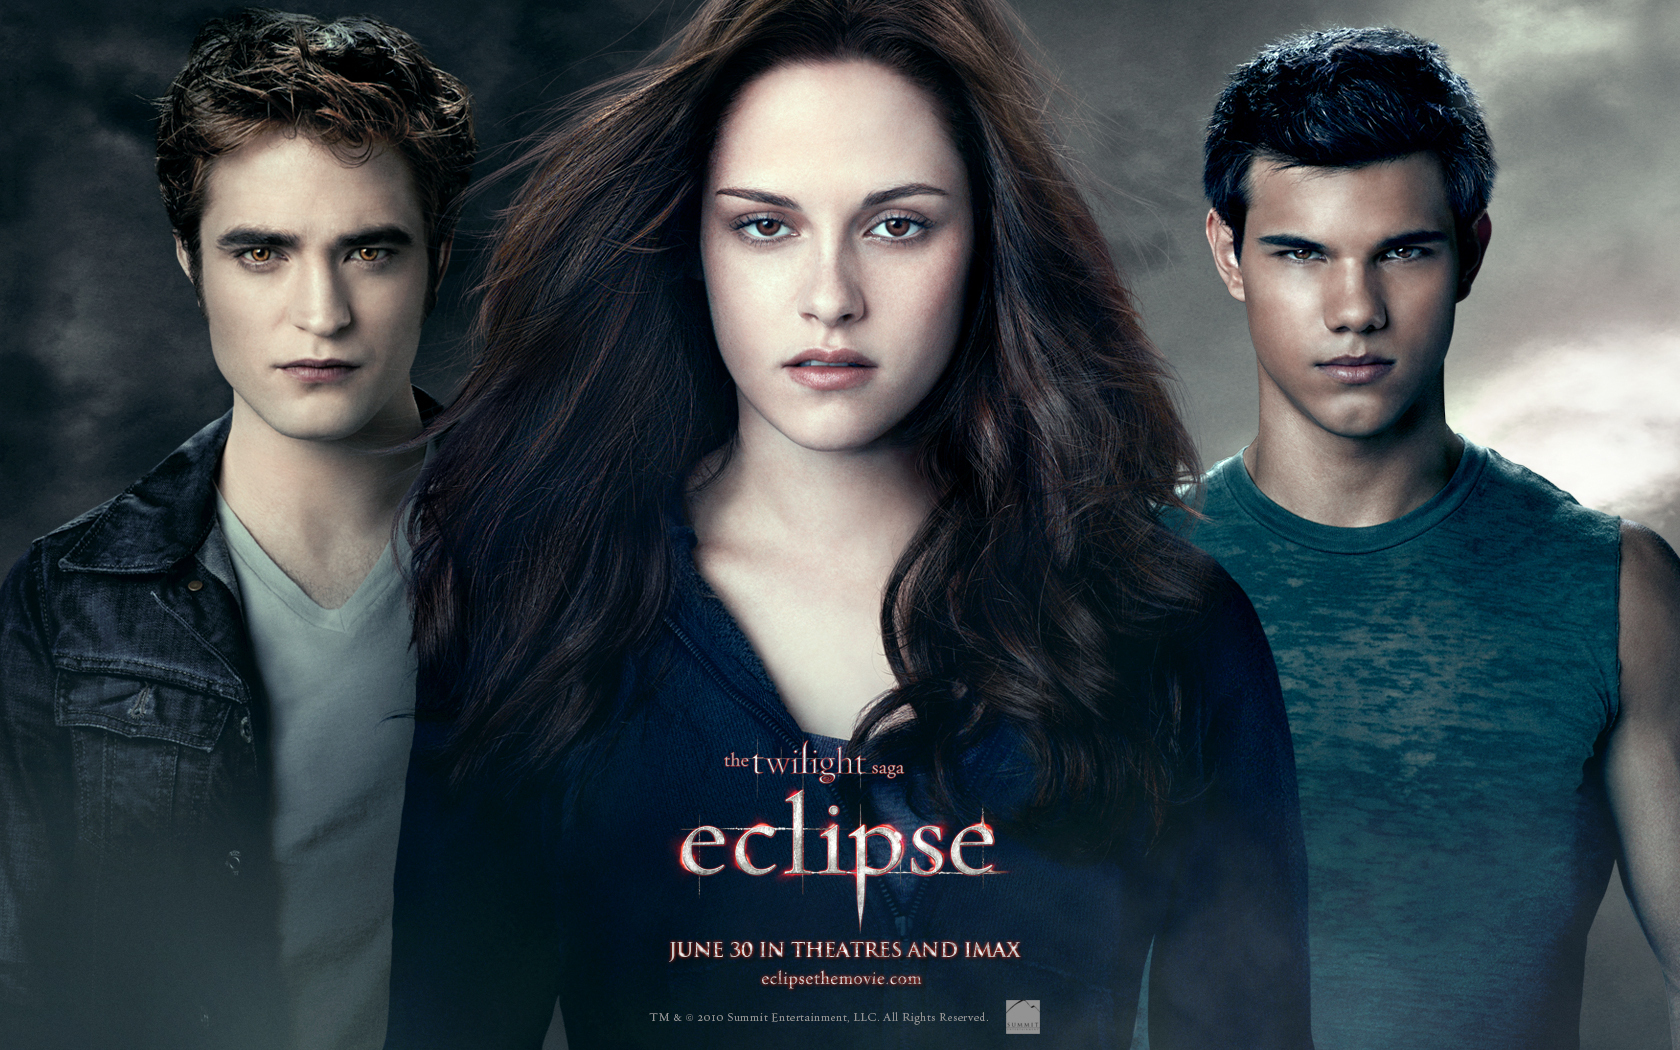 twilight series images eclipse - photo #28